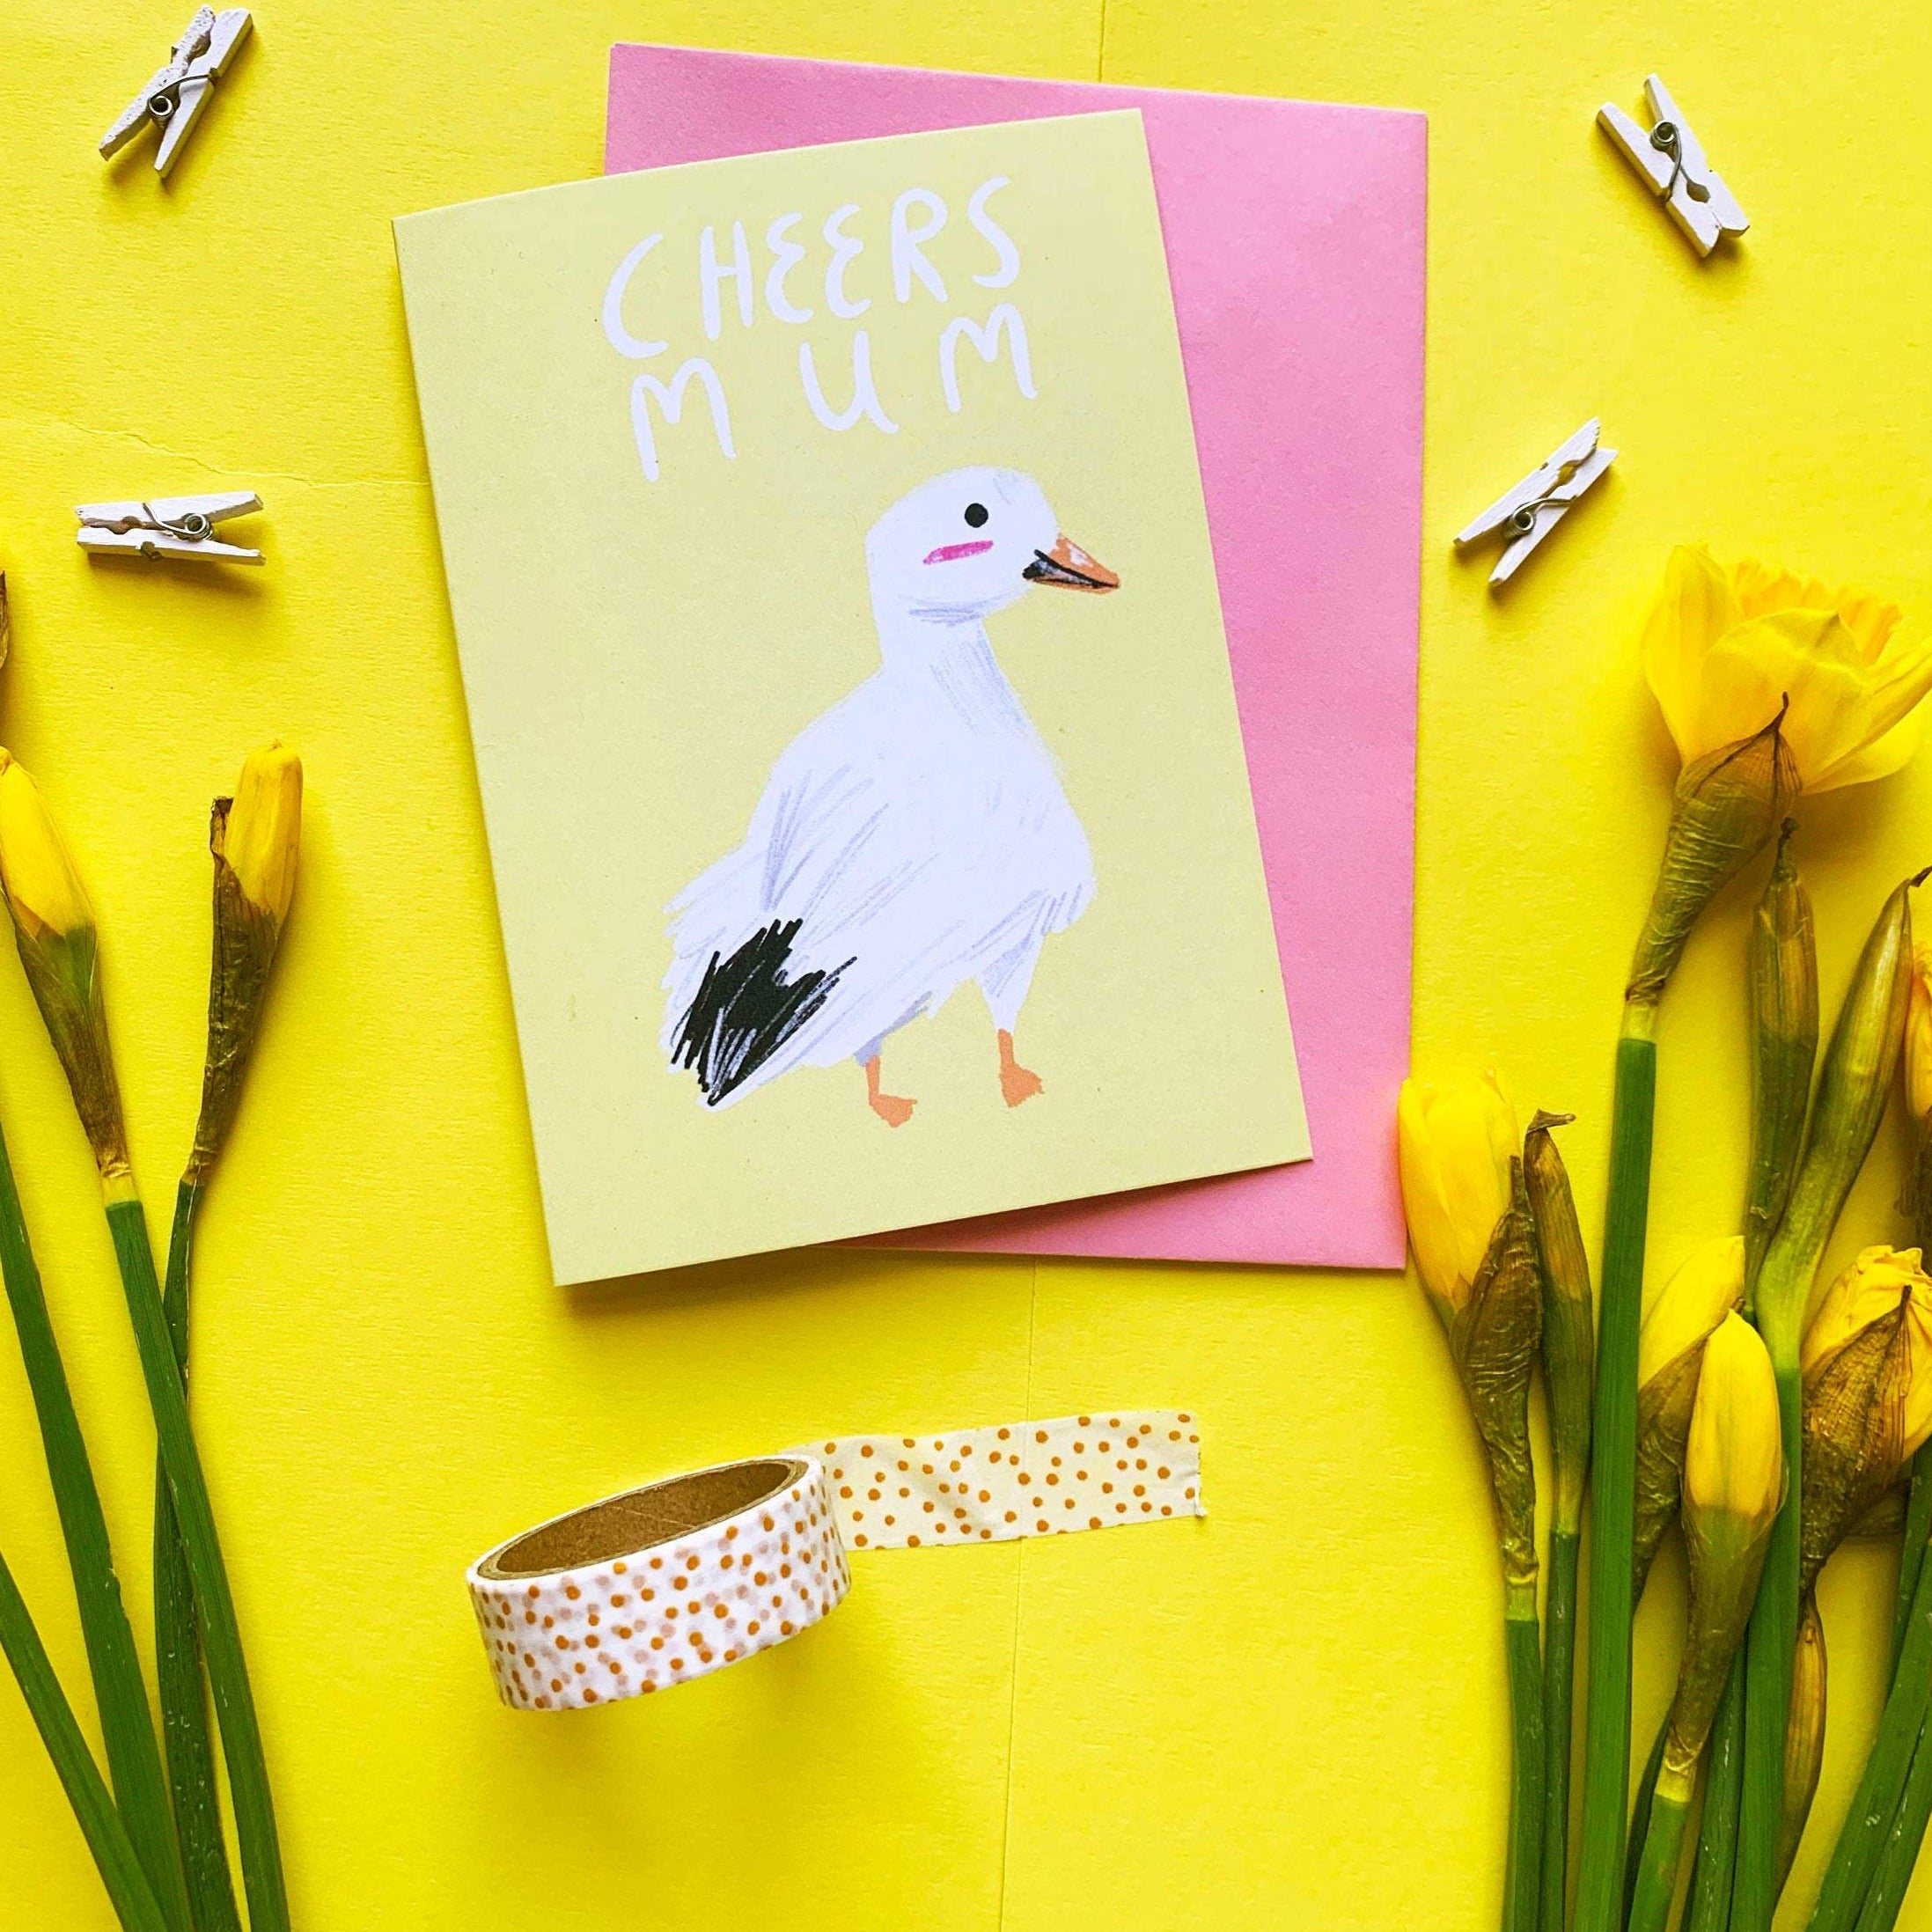 "A6 greeting card. It features a digital illustration of a white goose against a yellow background. It has a quote above the goose that reads ""CHEERS MUM"". The card is pictured with a pink envelope."